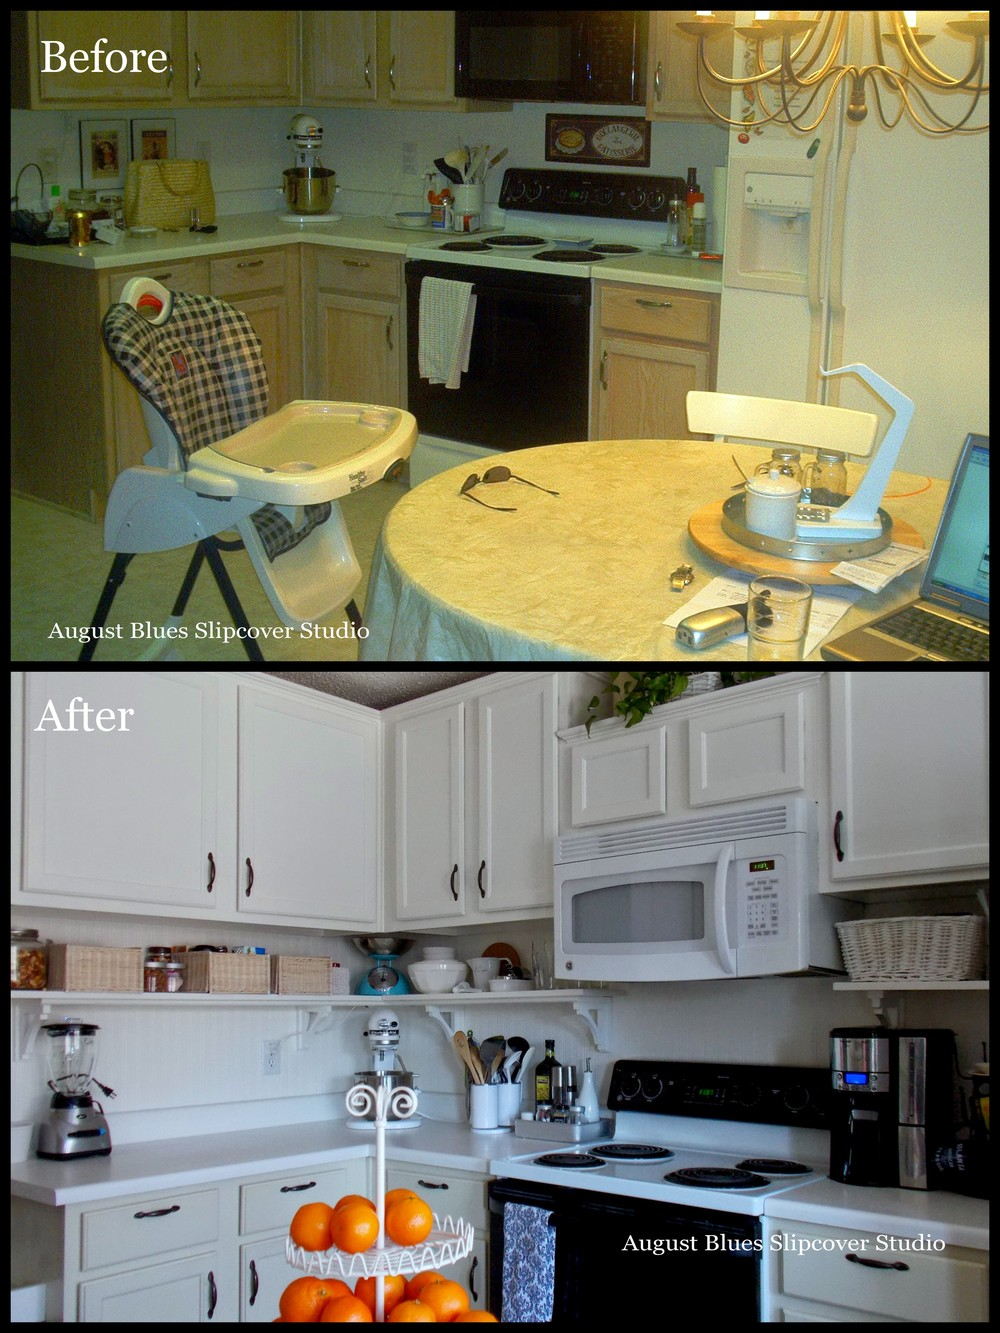 August Blues - Kitchen Before and After2